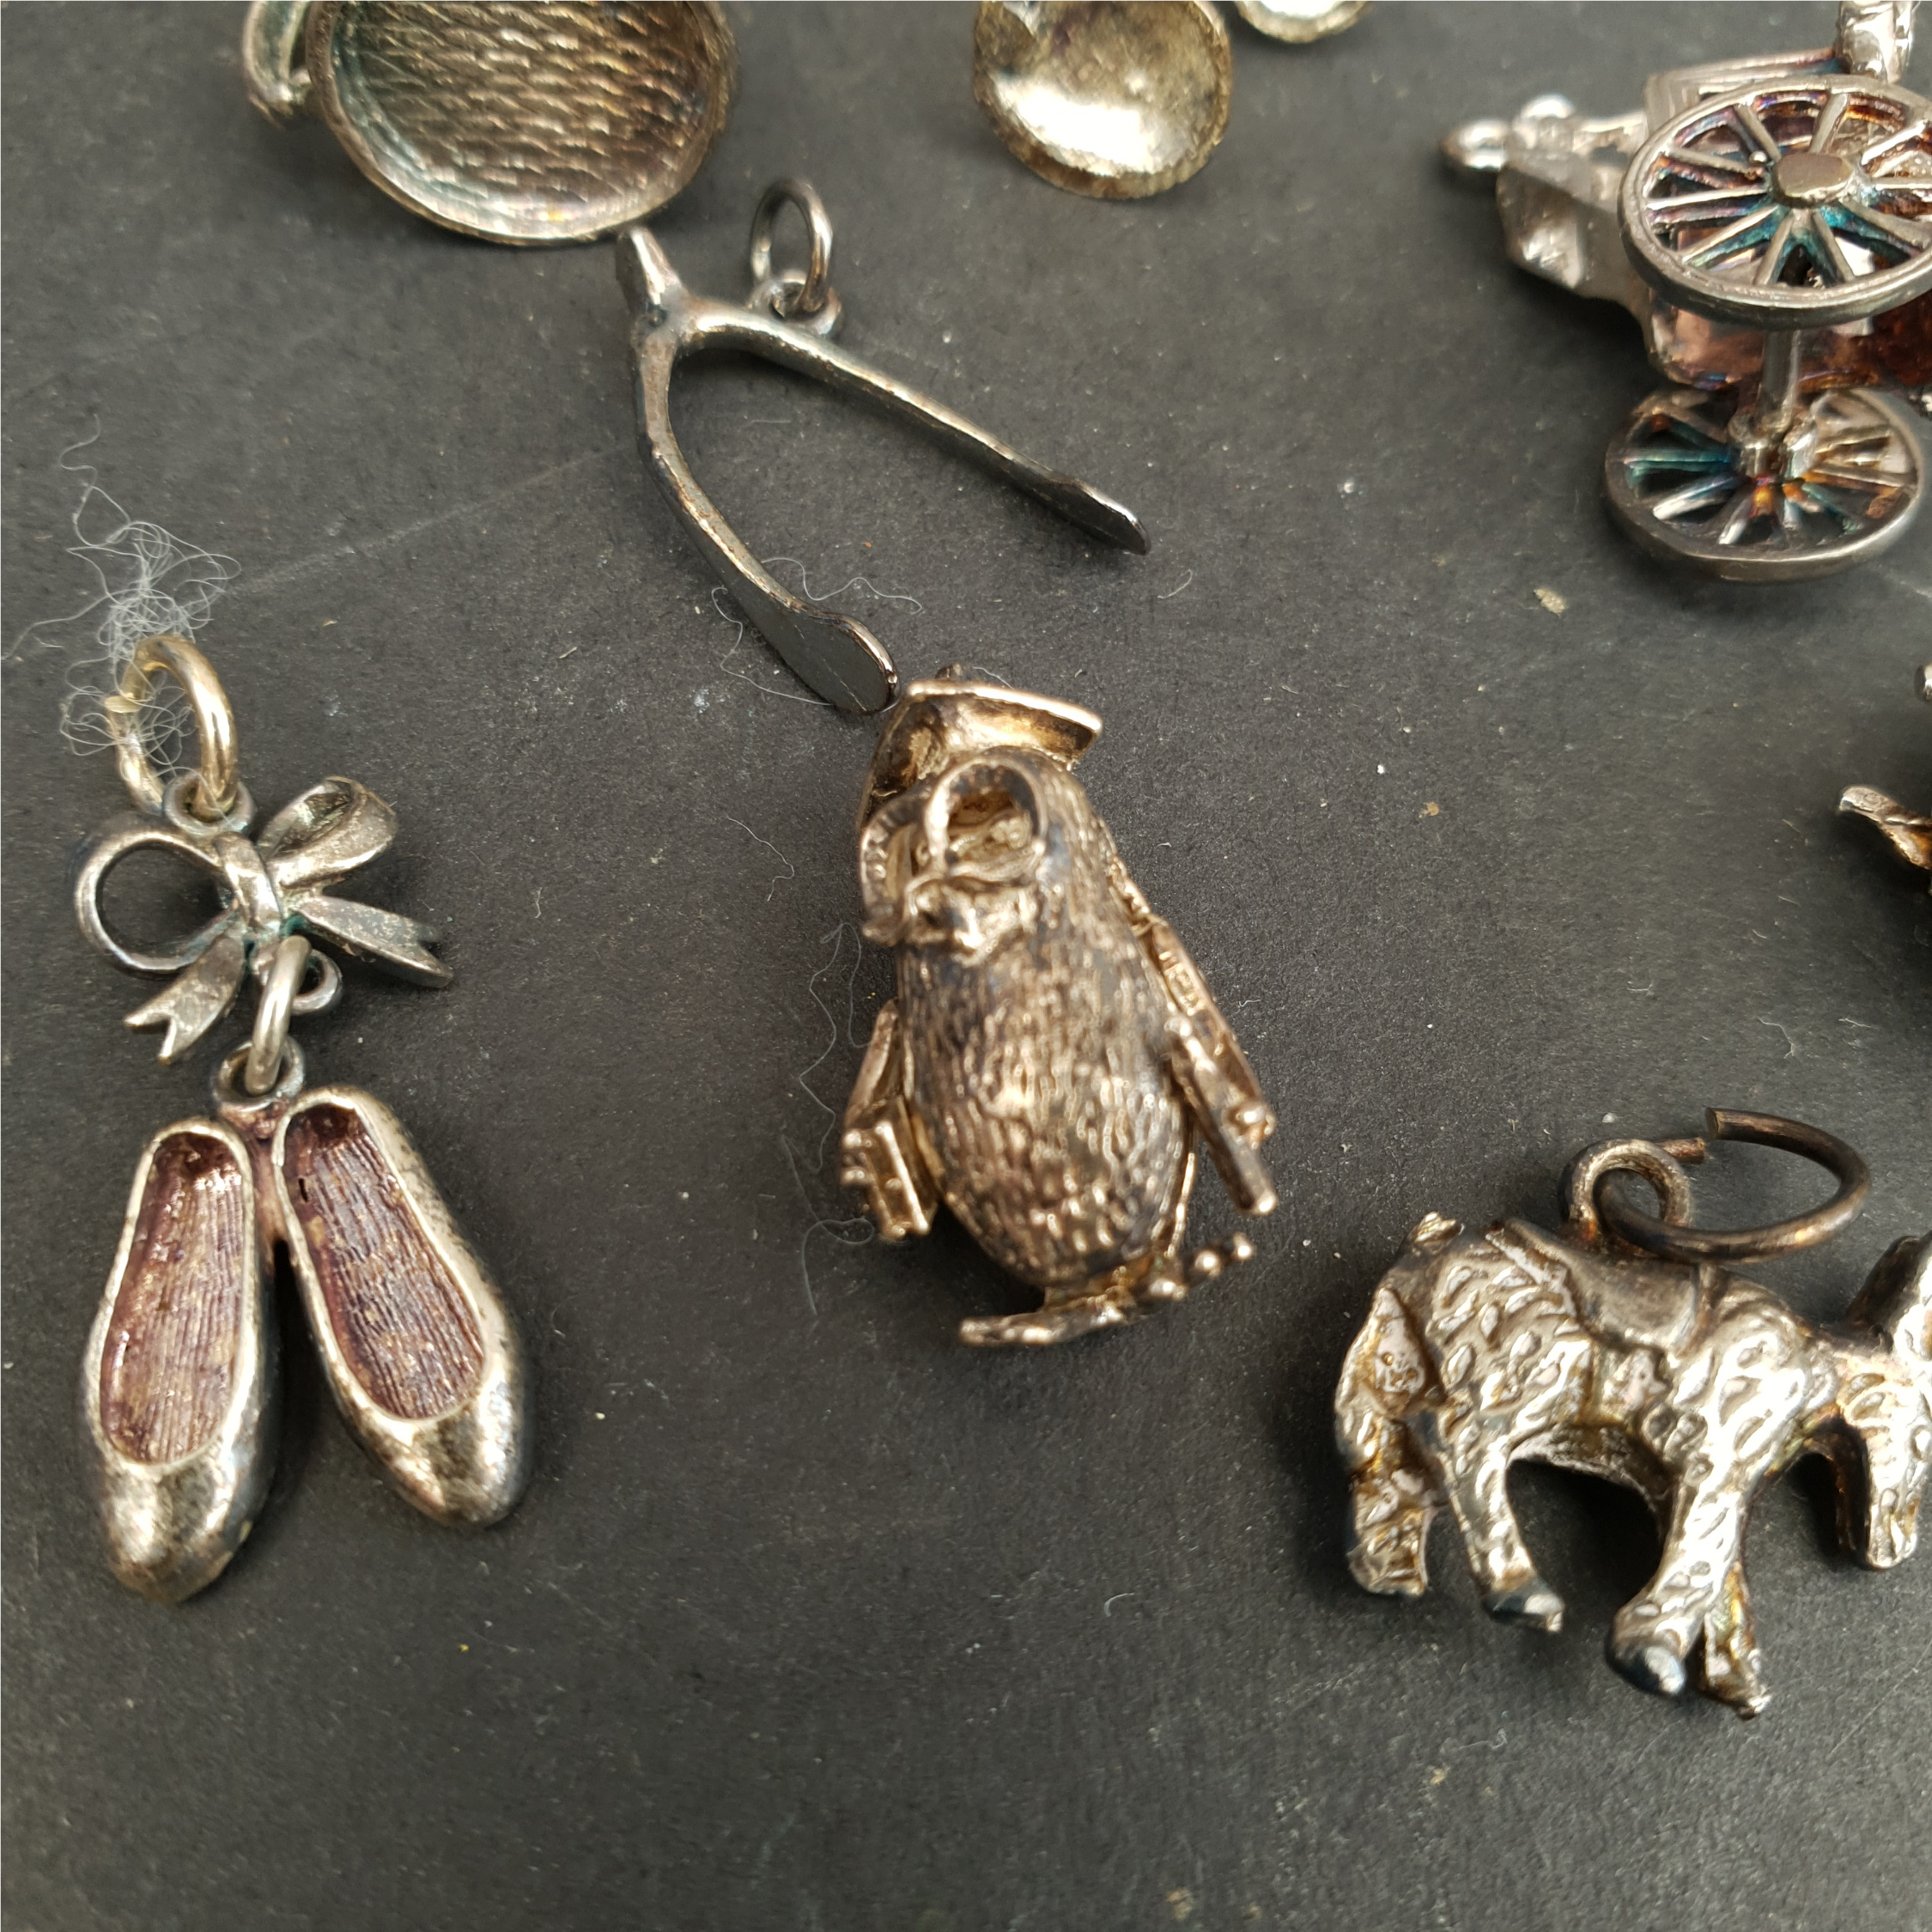 Vintage Parcel of 8 Silver Charms Includes Donkey Owl Ballet Shoes etc. - Image 2 of 2